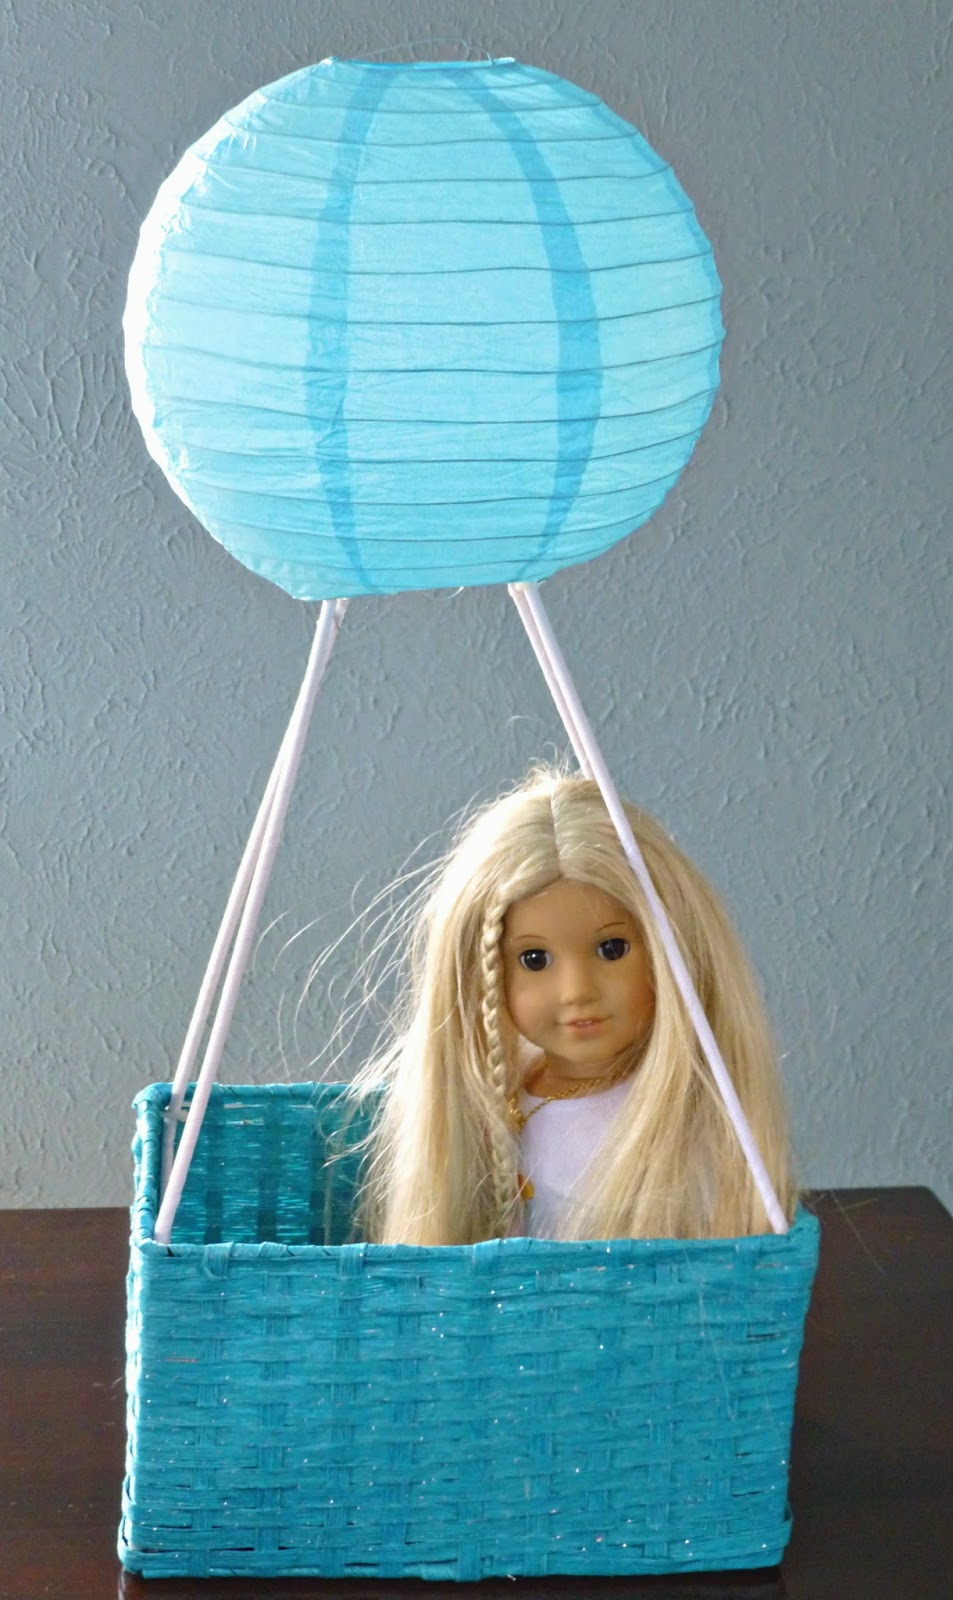 American Girl Doll Hot Air Balloon